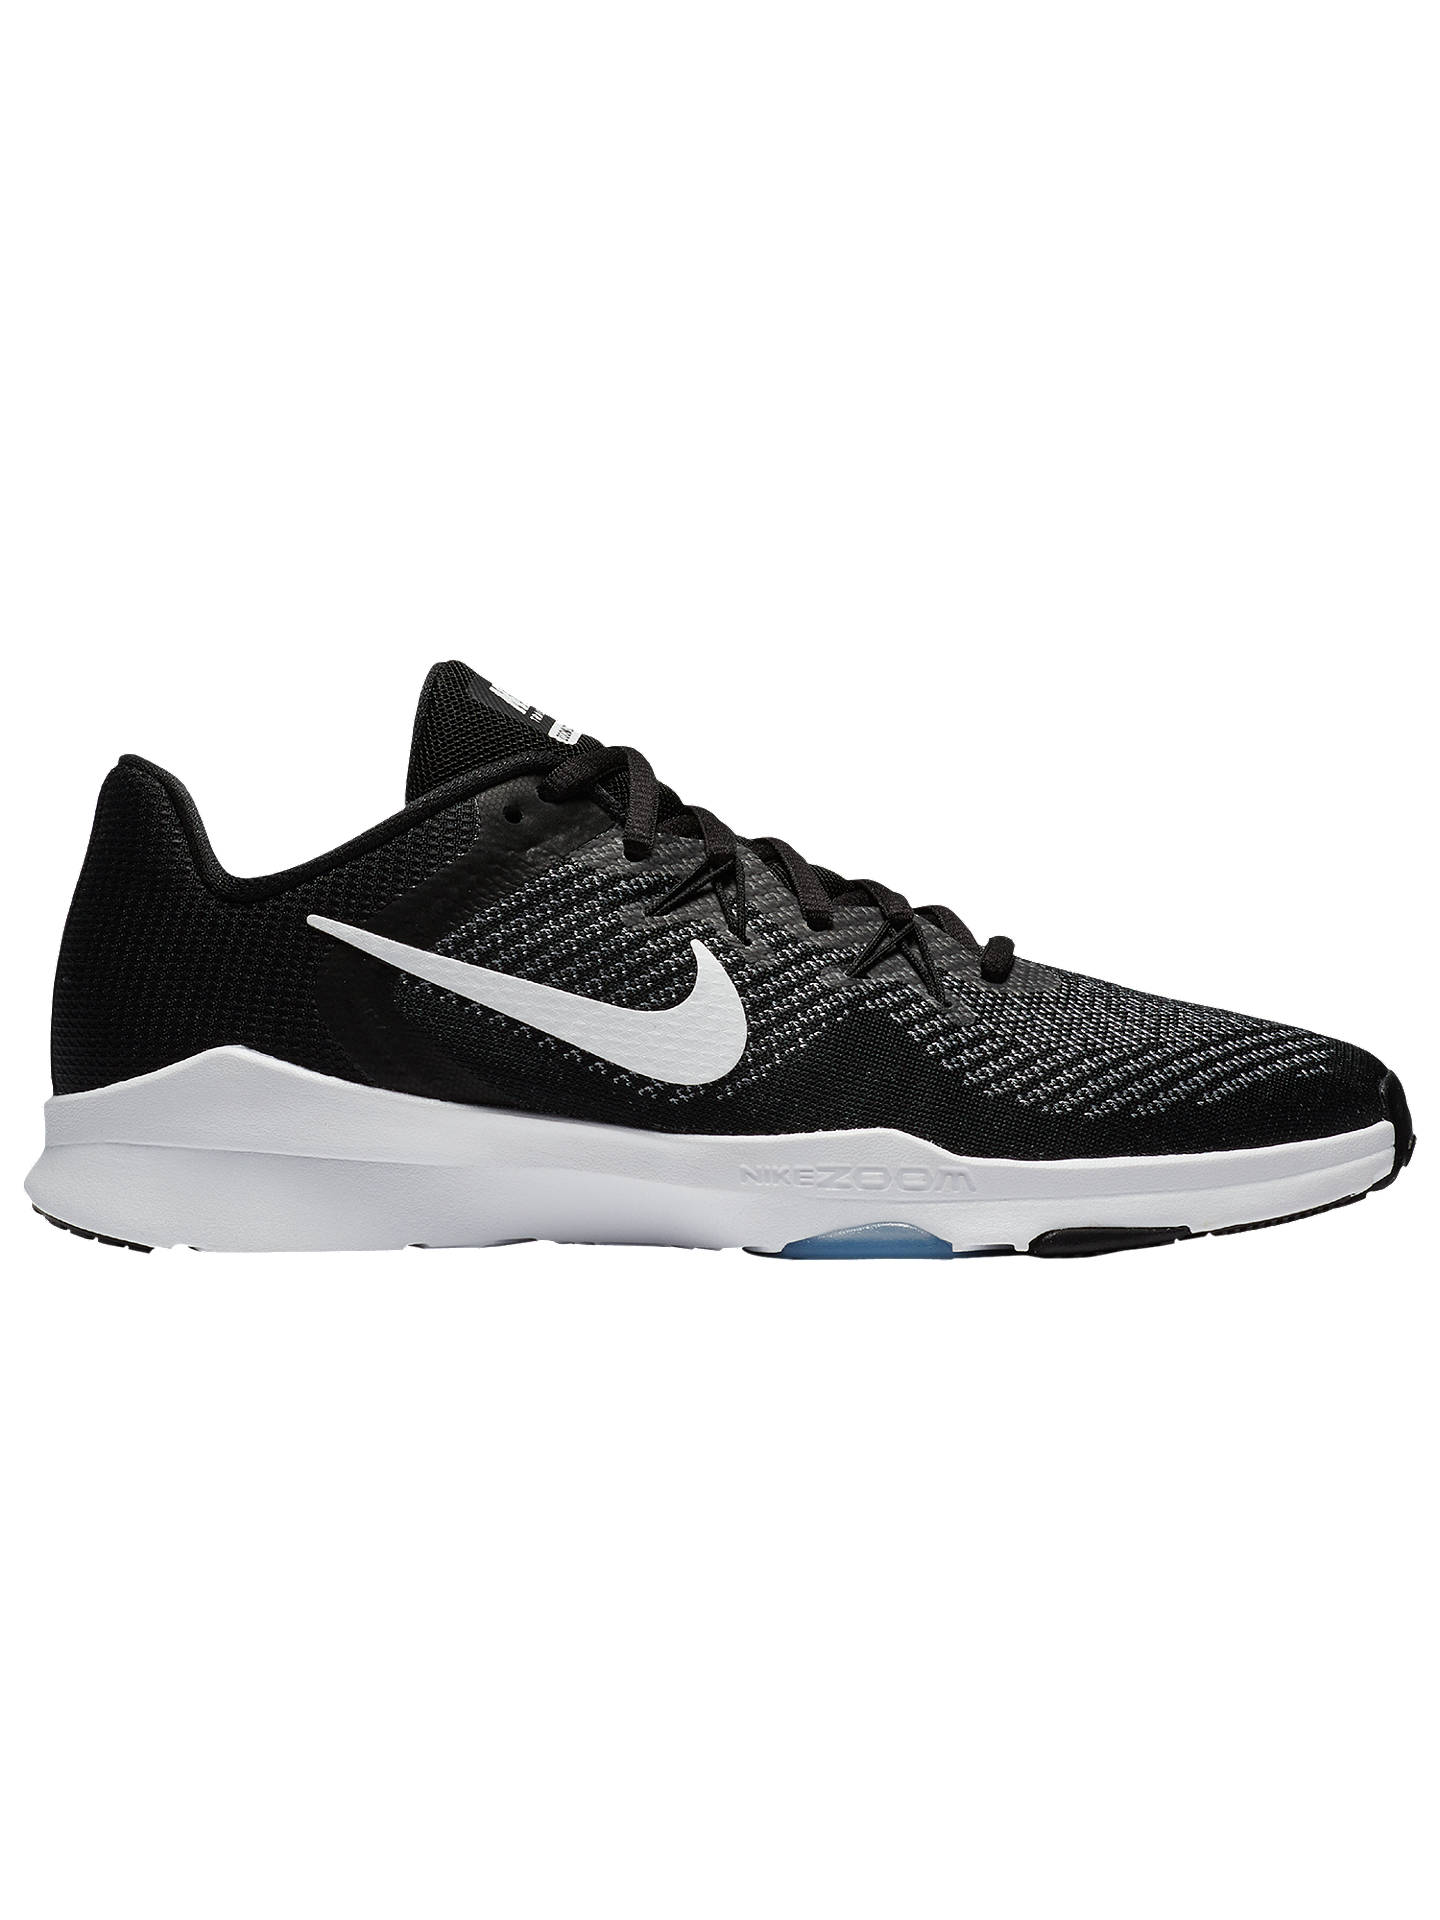 c598c0c97 Buy Nike Zoom Condition TR 2 Women s Training Shoe